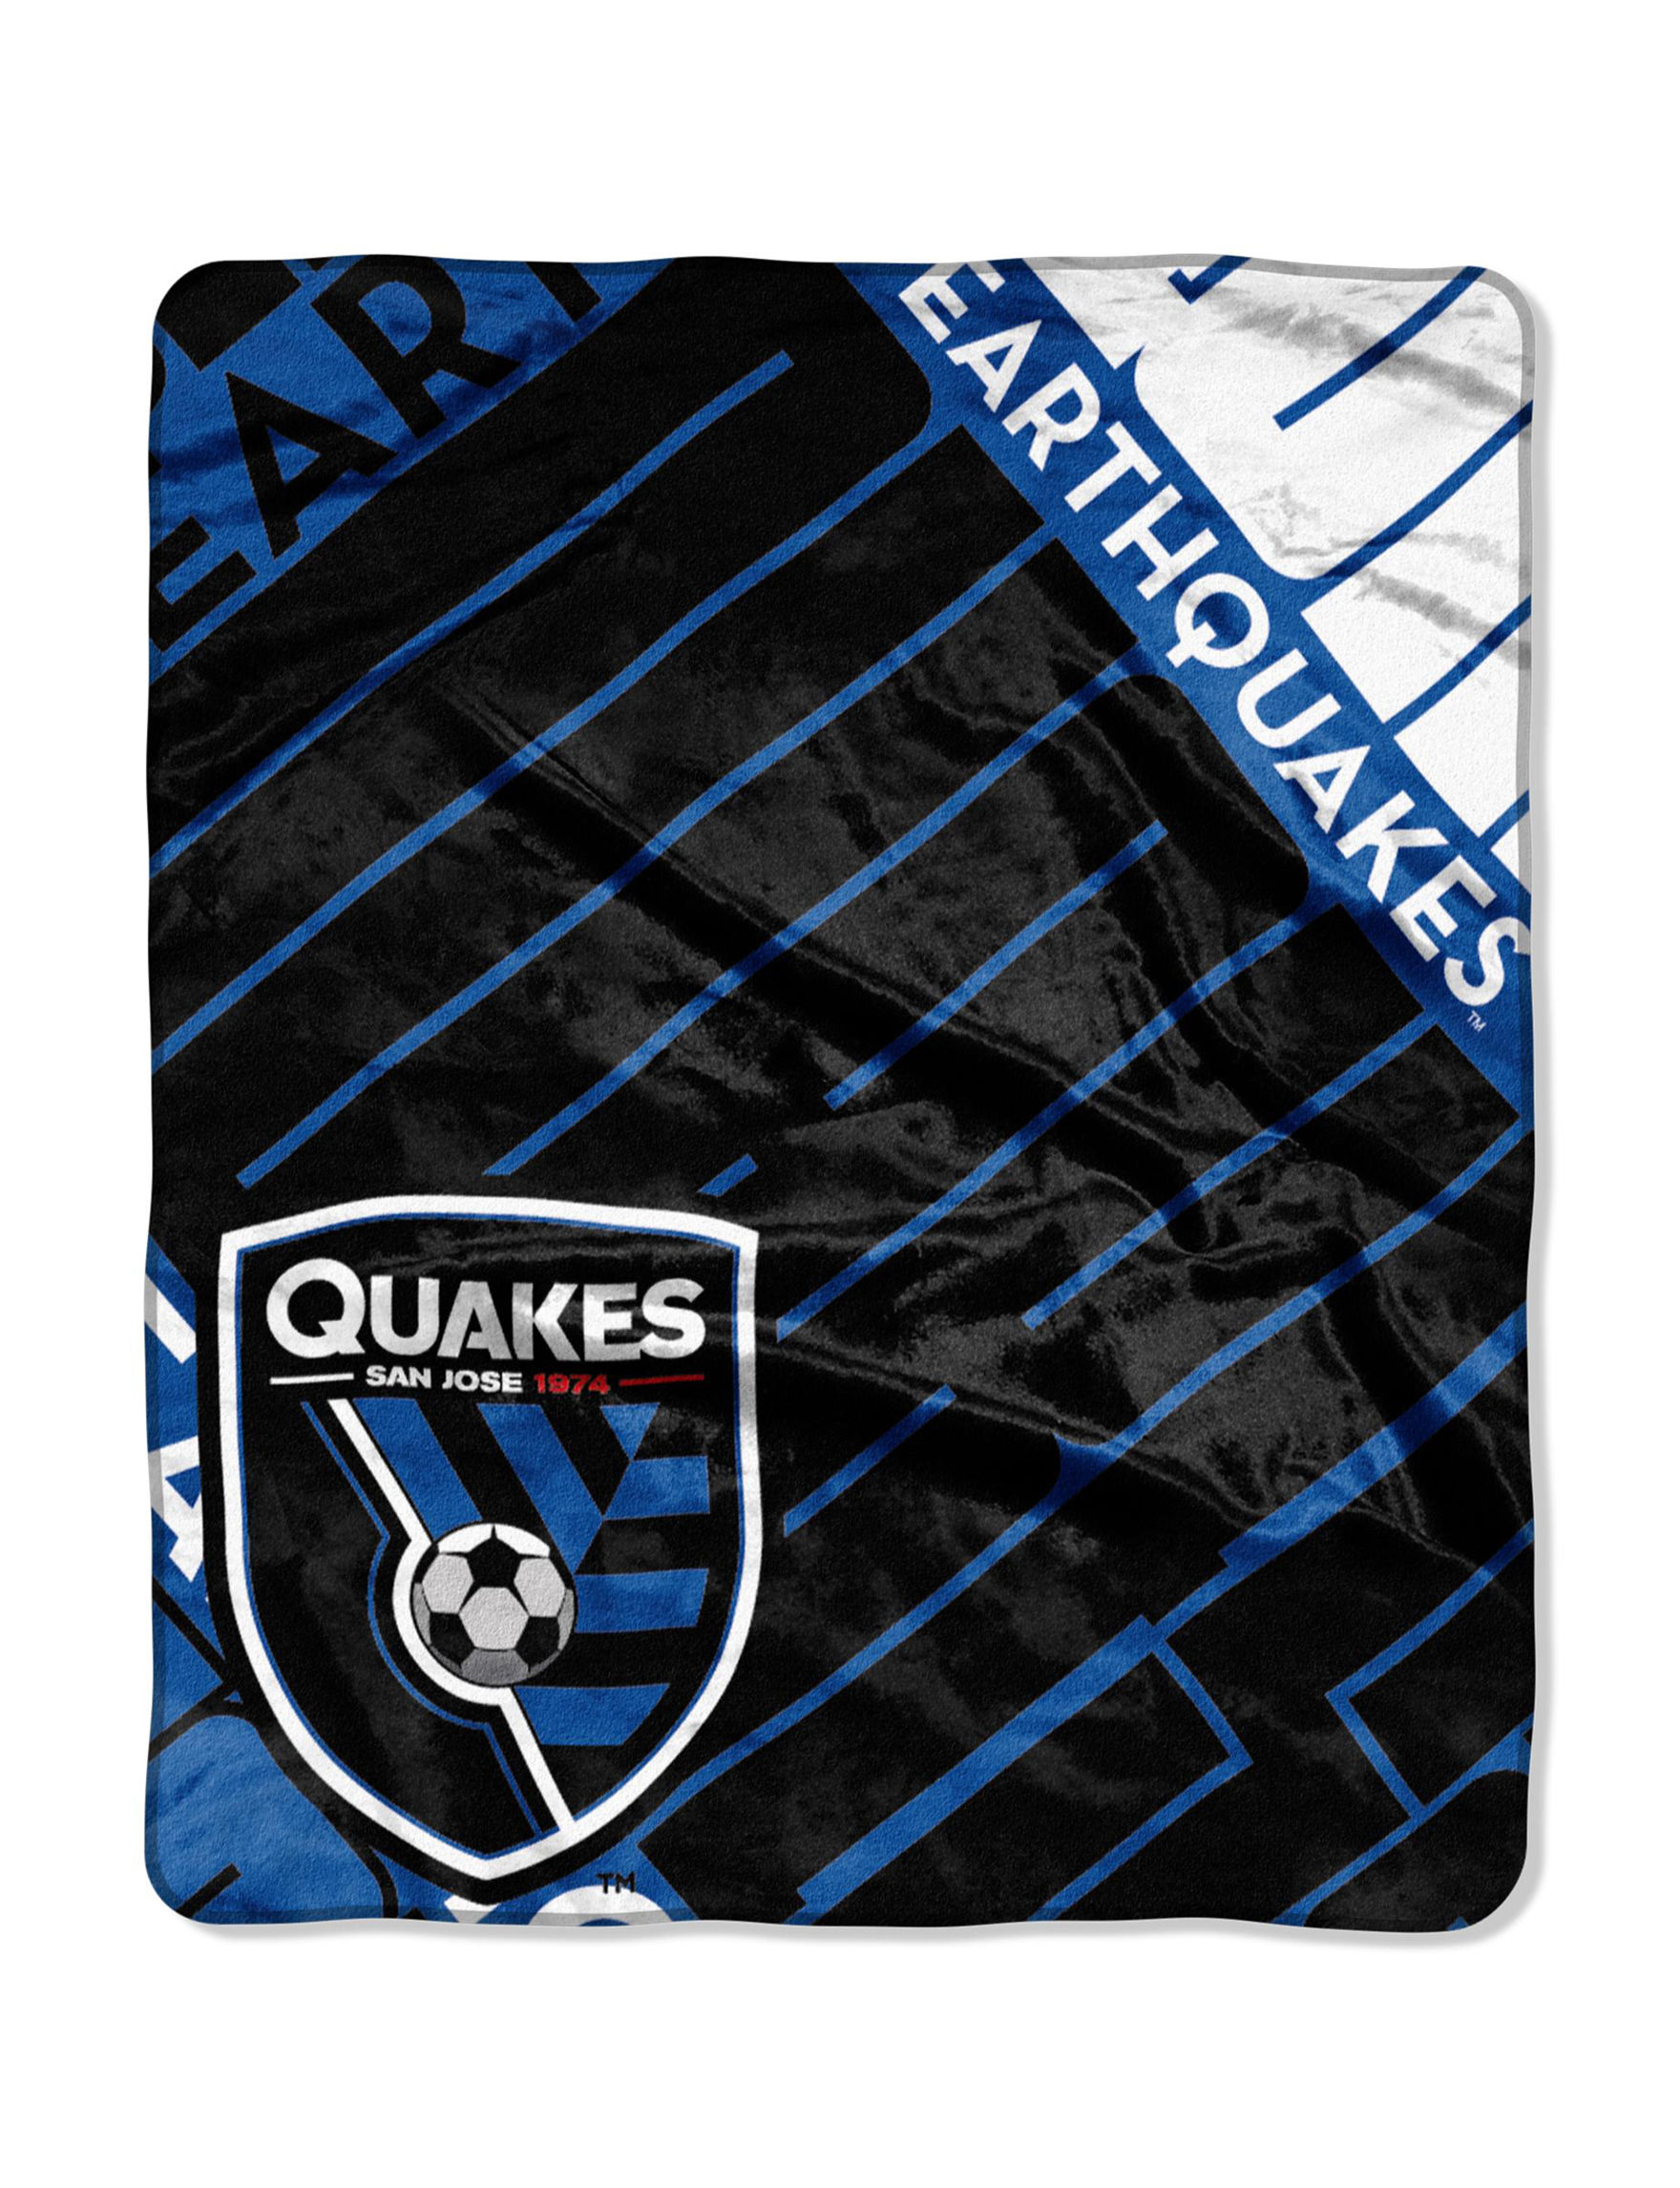 The Northwest Company Blue / Black Blankets & Throws